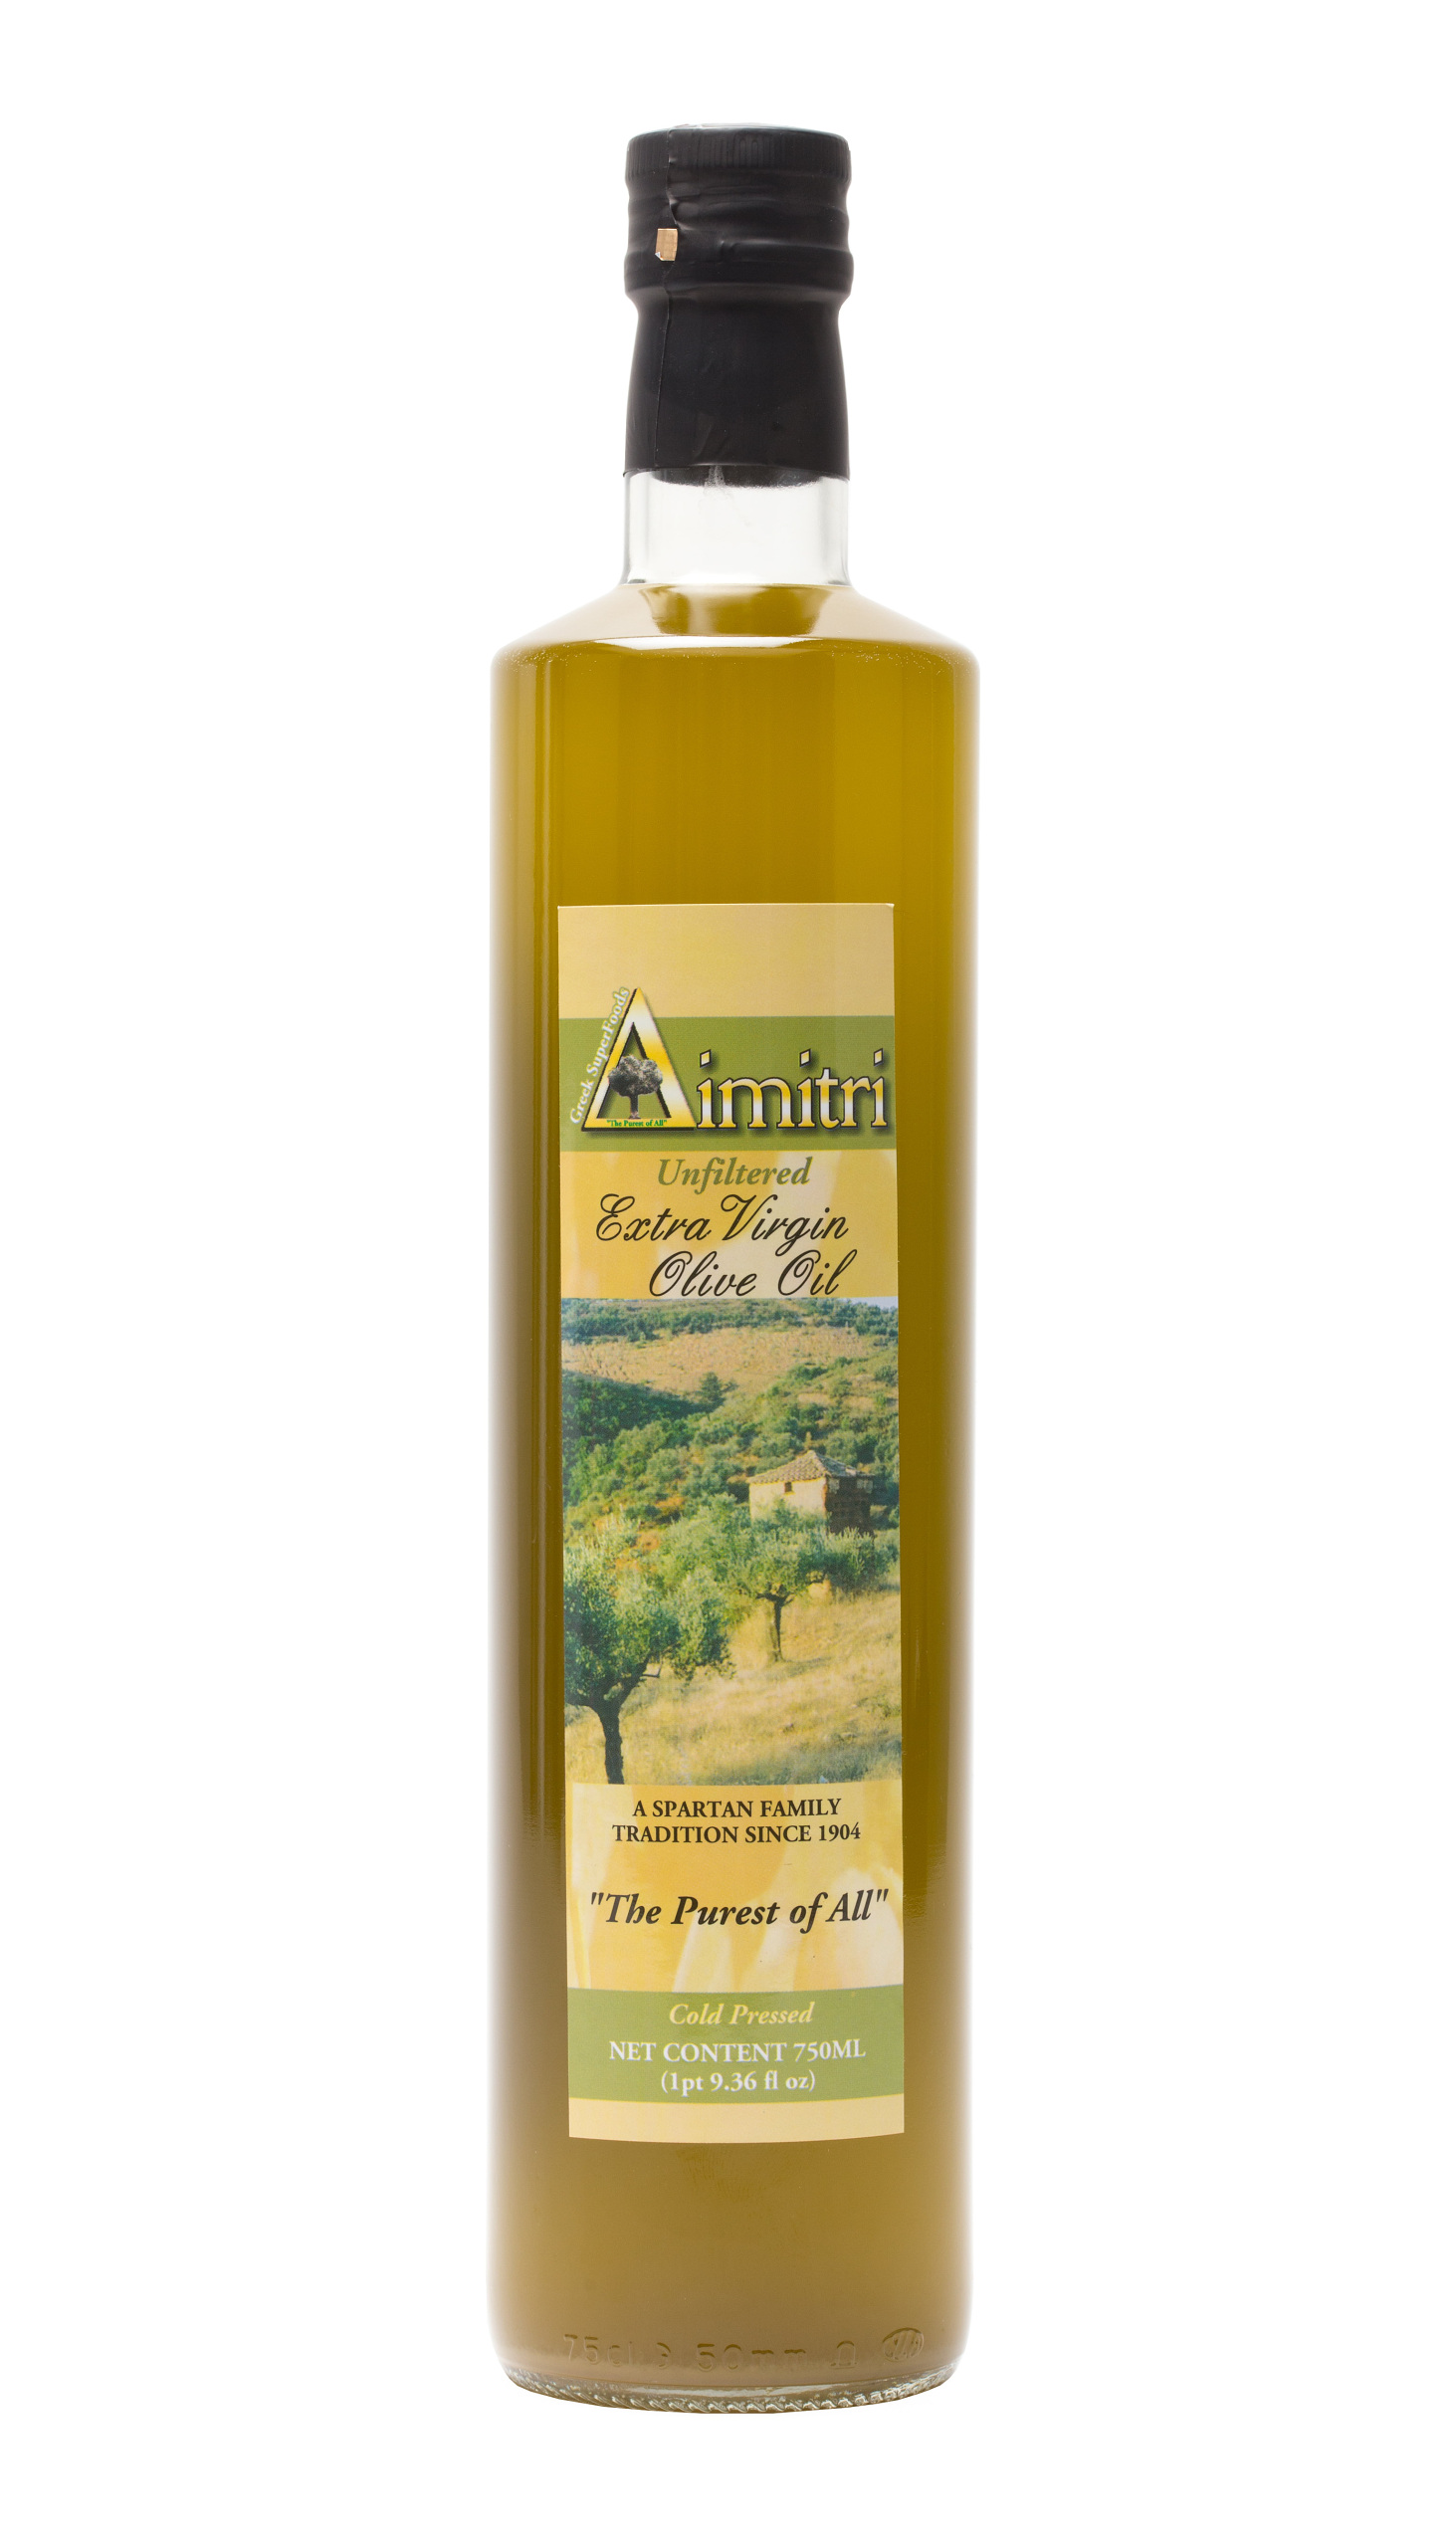 Dimitri Unfiltered Extra Virgin Olive Oil (750ml)